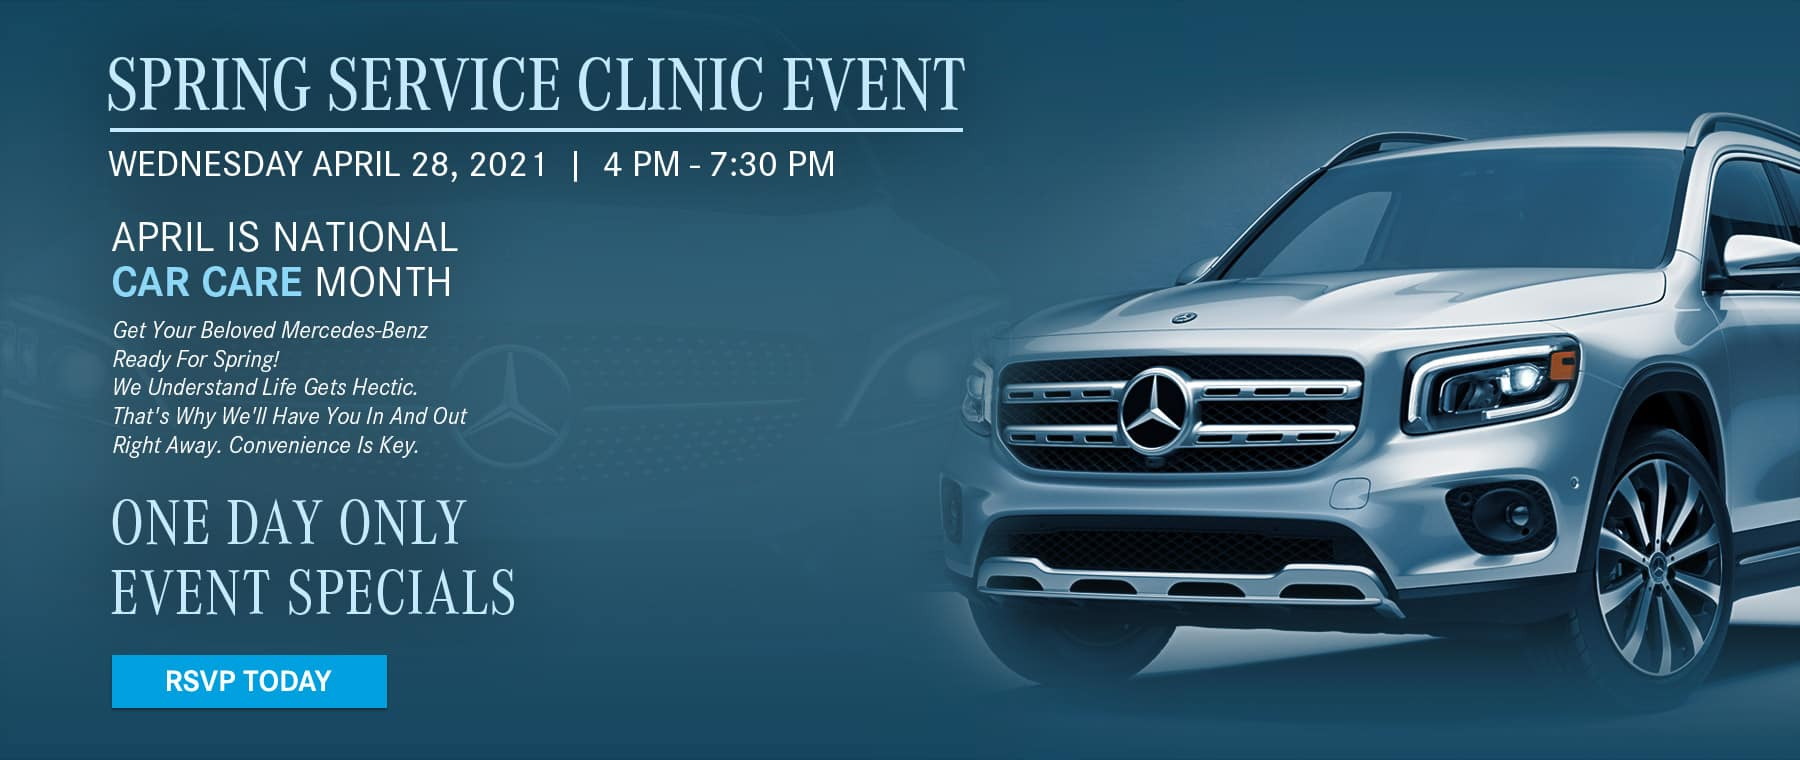 Homepage-Slider-MBH-Service-Clinic-Event